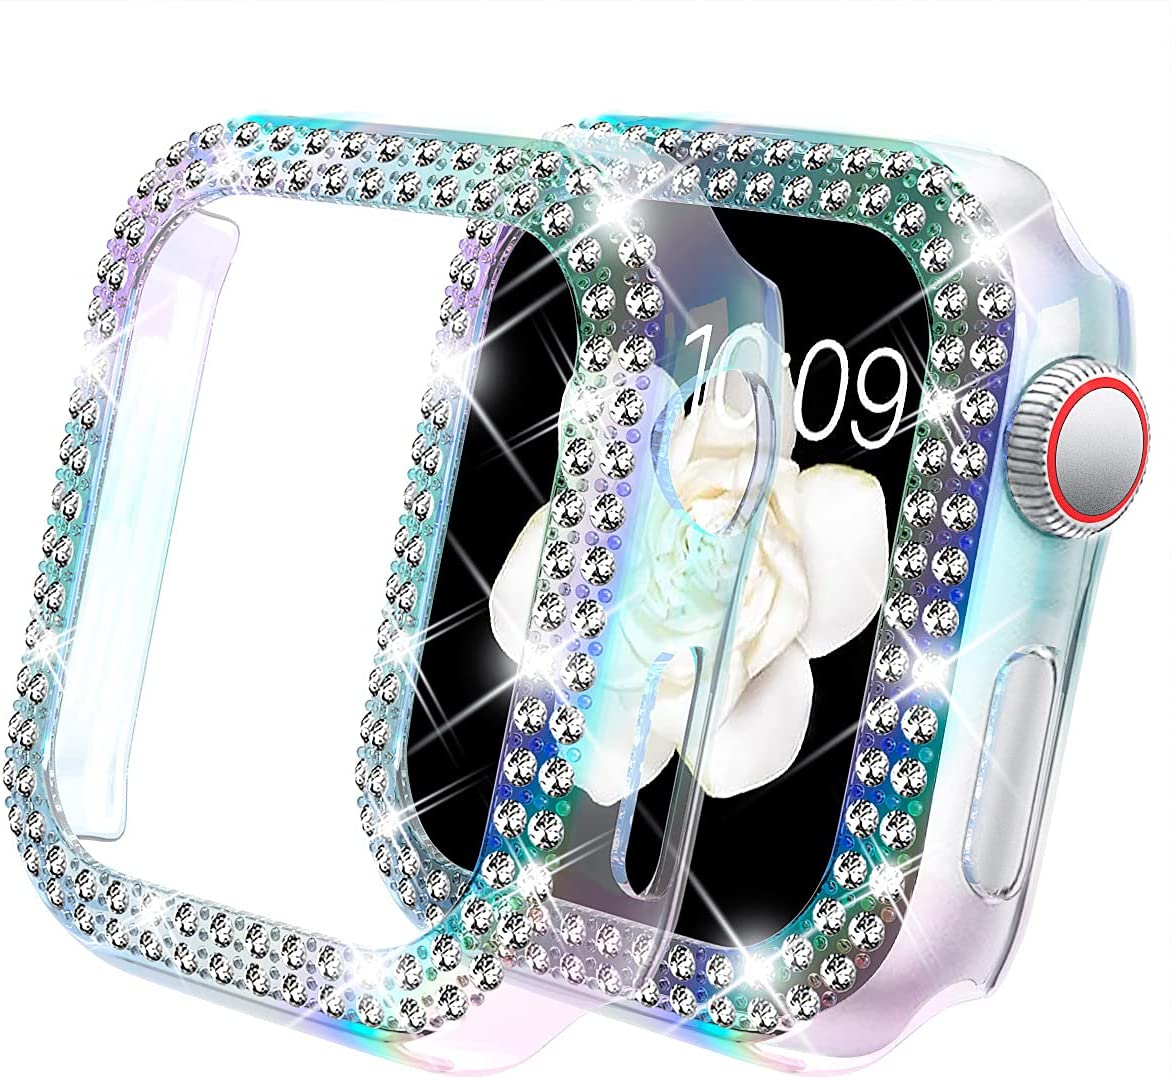 DABAOZA Compatible for Apple Watch 40mm Case Cover Bumper , Bling Women Girls Protective Cover Dressy Diamonds Bumper Hard PC Shockproof Rhinestone Case for SE iWatch Series 6 5 4(Colorful, 40mm)